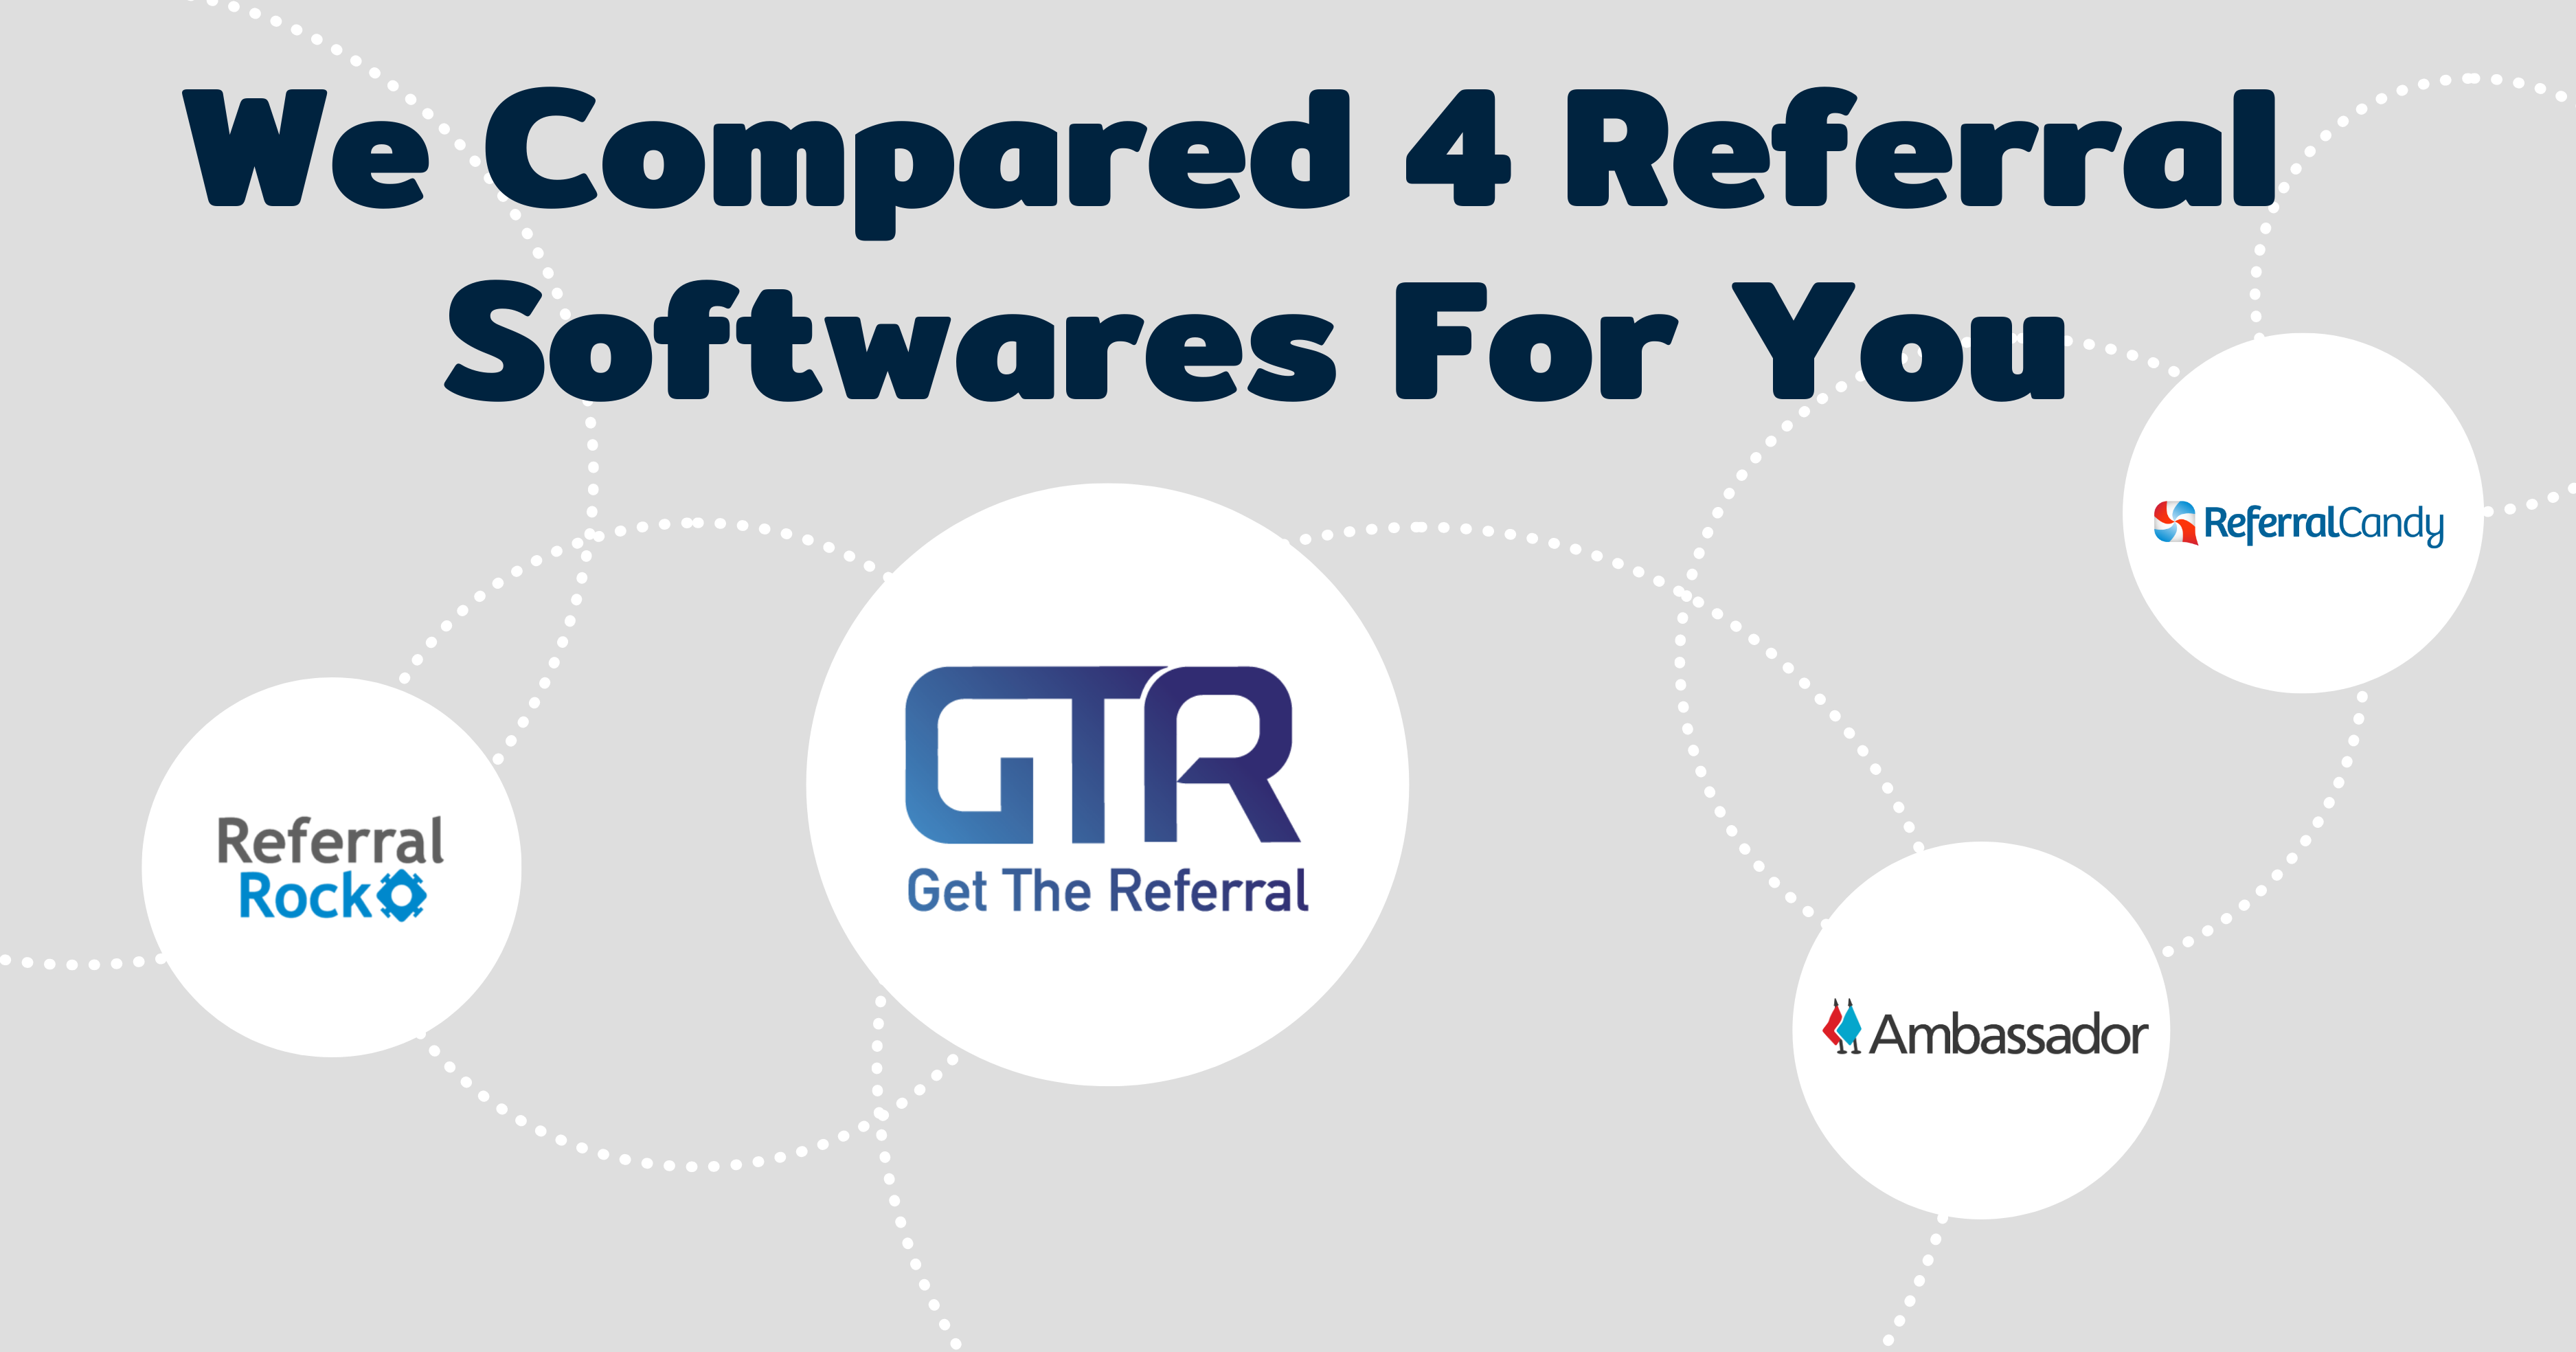 We Compared 4 Referral Softwares For You